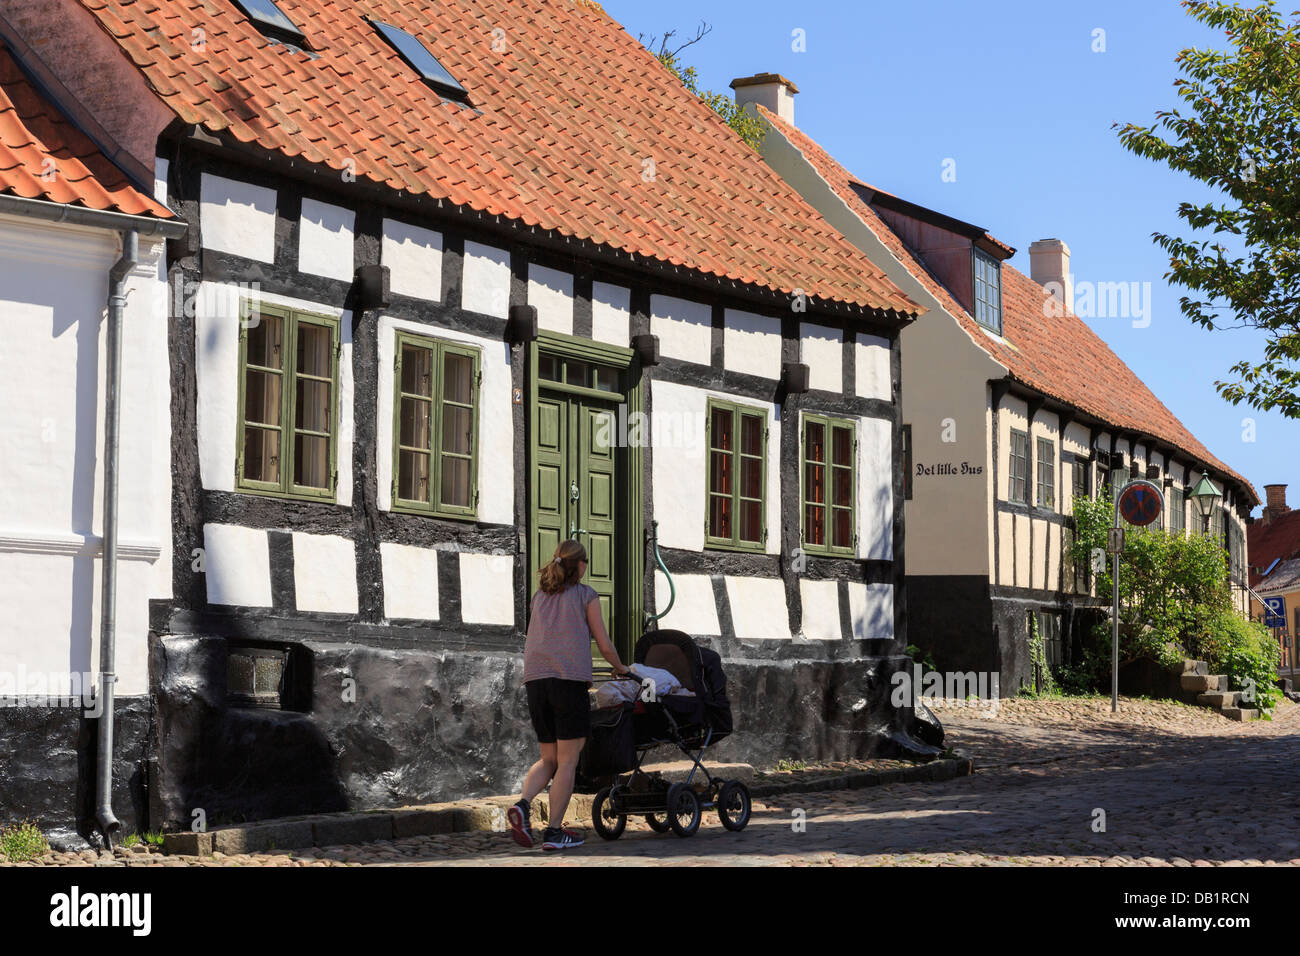 Woman pushing a pram over cobbles past quaint old houses on narrow cobbled street of Overgade, Ebeltoft, Jutland, - Stock Image